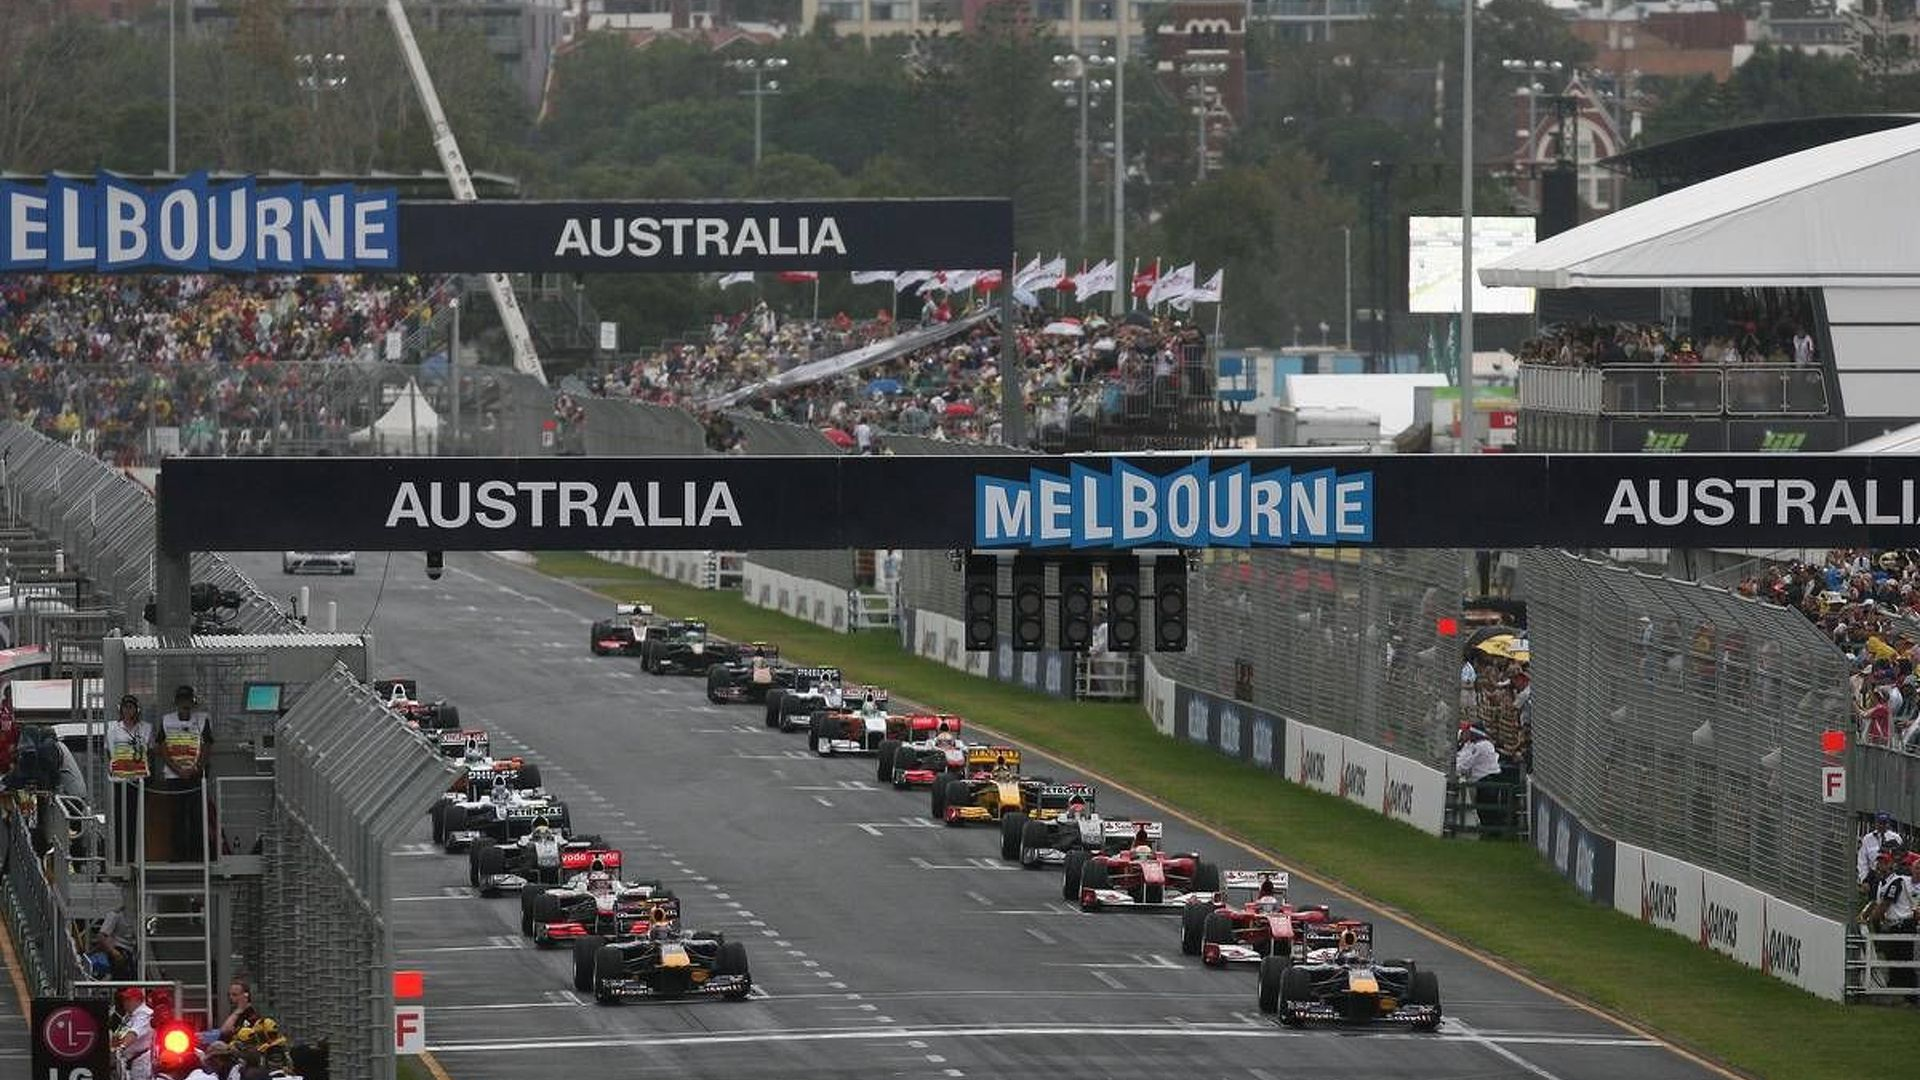 Australia to have earlier start time in 2011